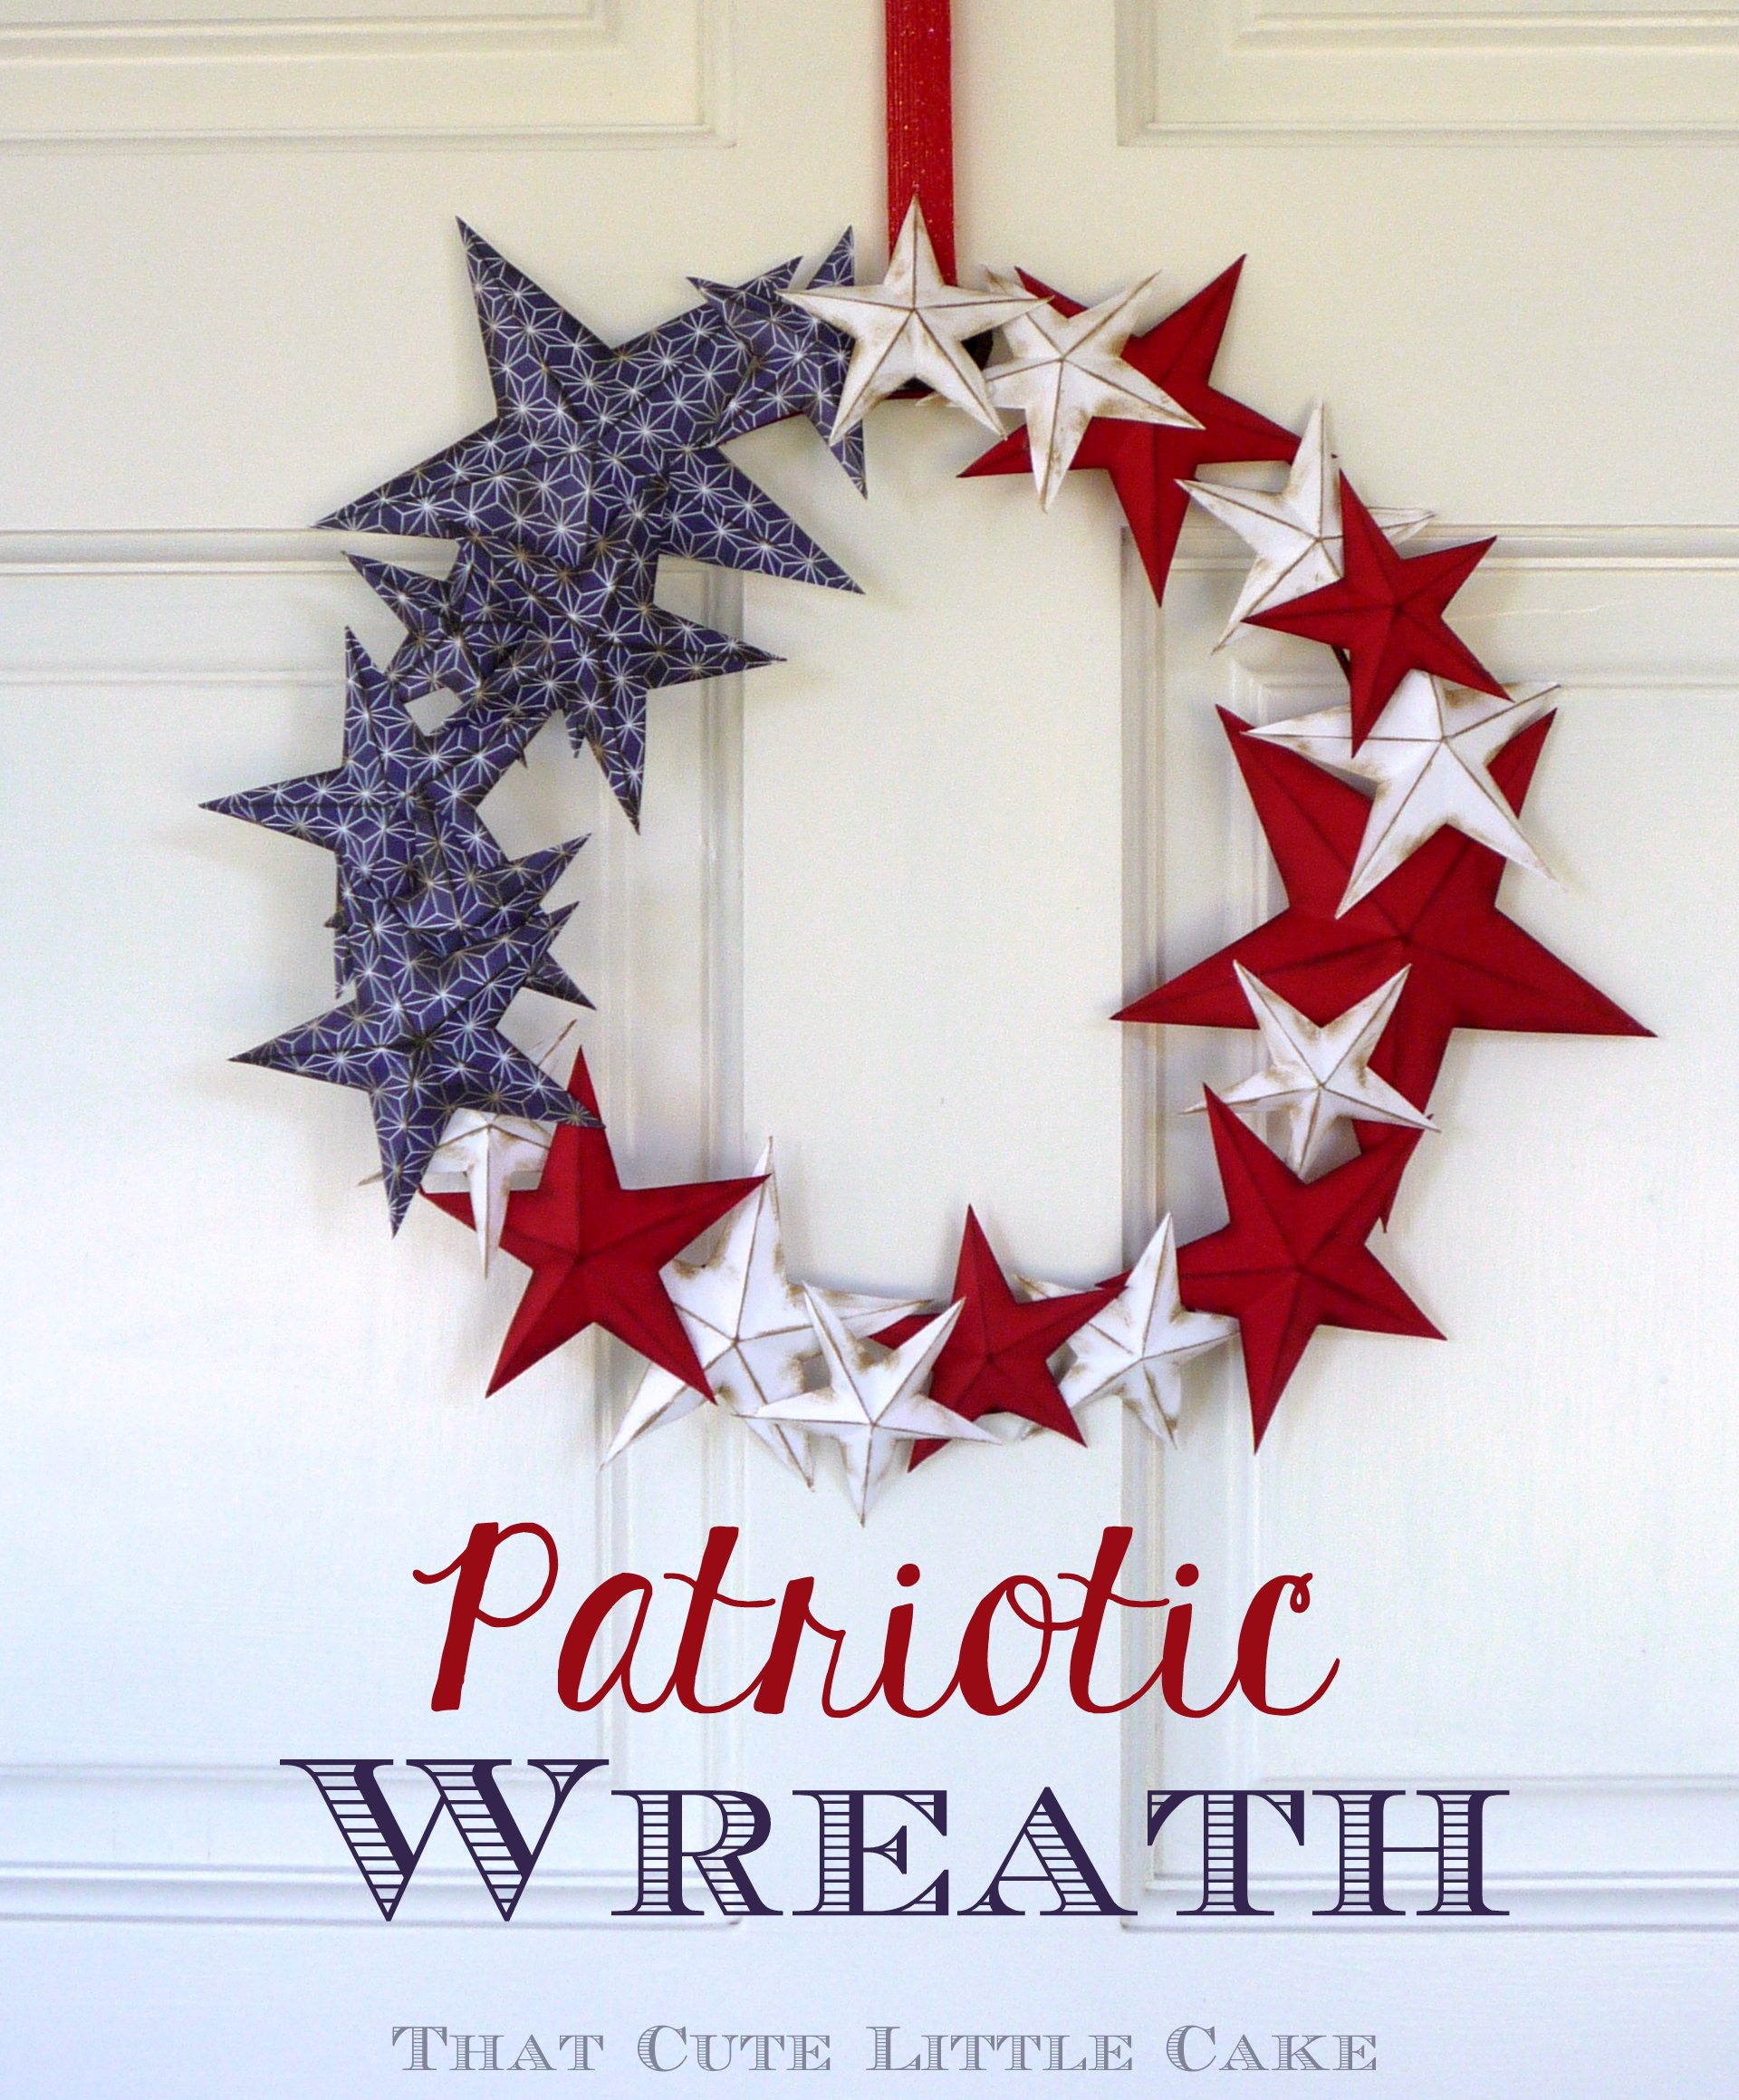 Patriotic july 4th paper wreath diy catch my party for Americana crafts to make